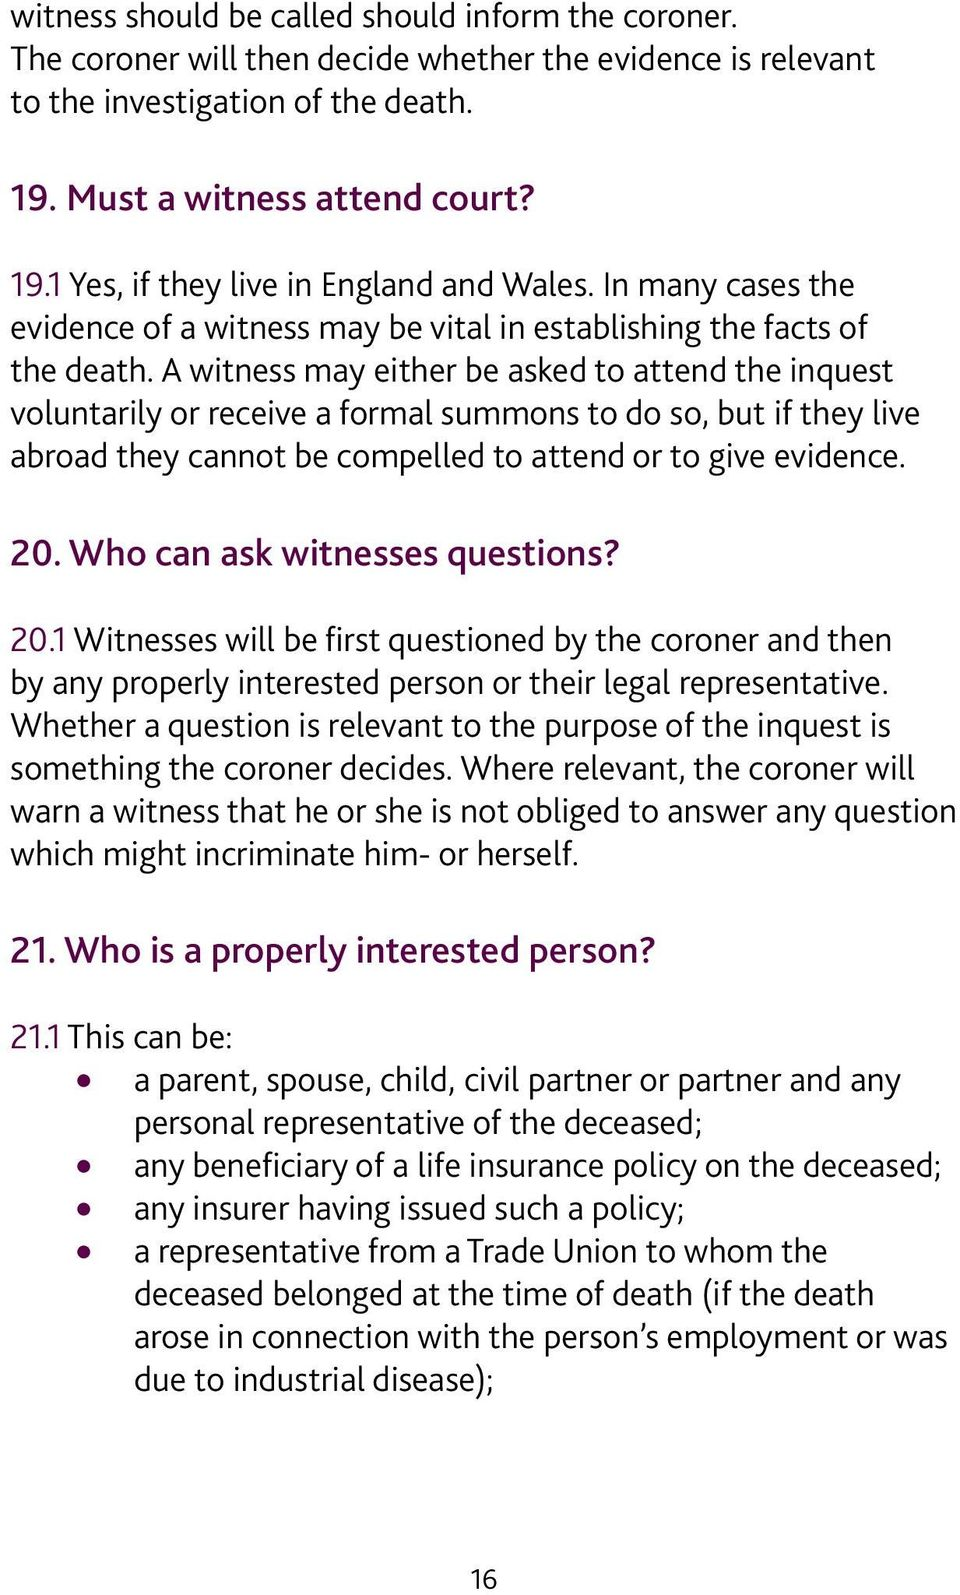 A witness may either be asked to attend the inquest voluntarily or receive a formal summons to do so, but if they live abroad they cannot be compelled to attend or to give evidence. 20.